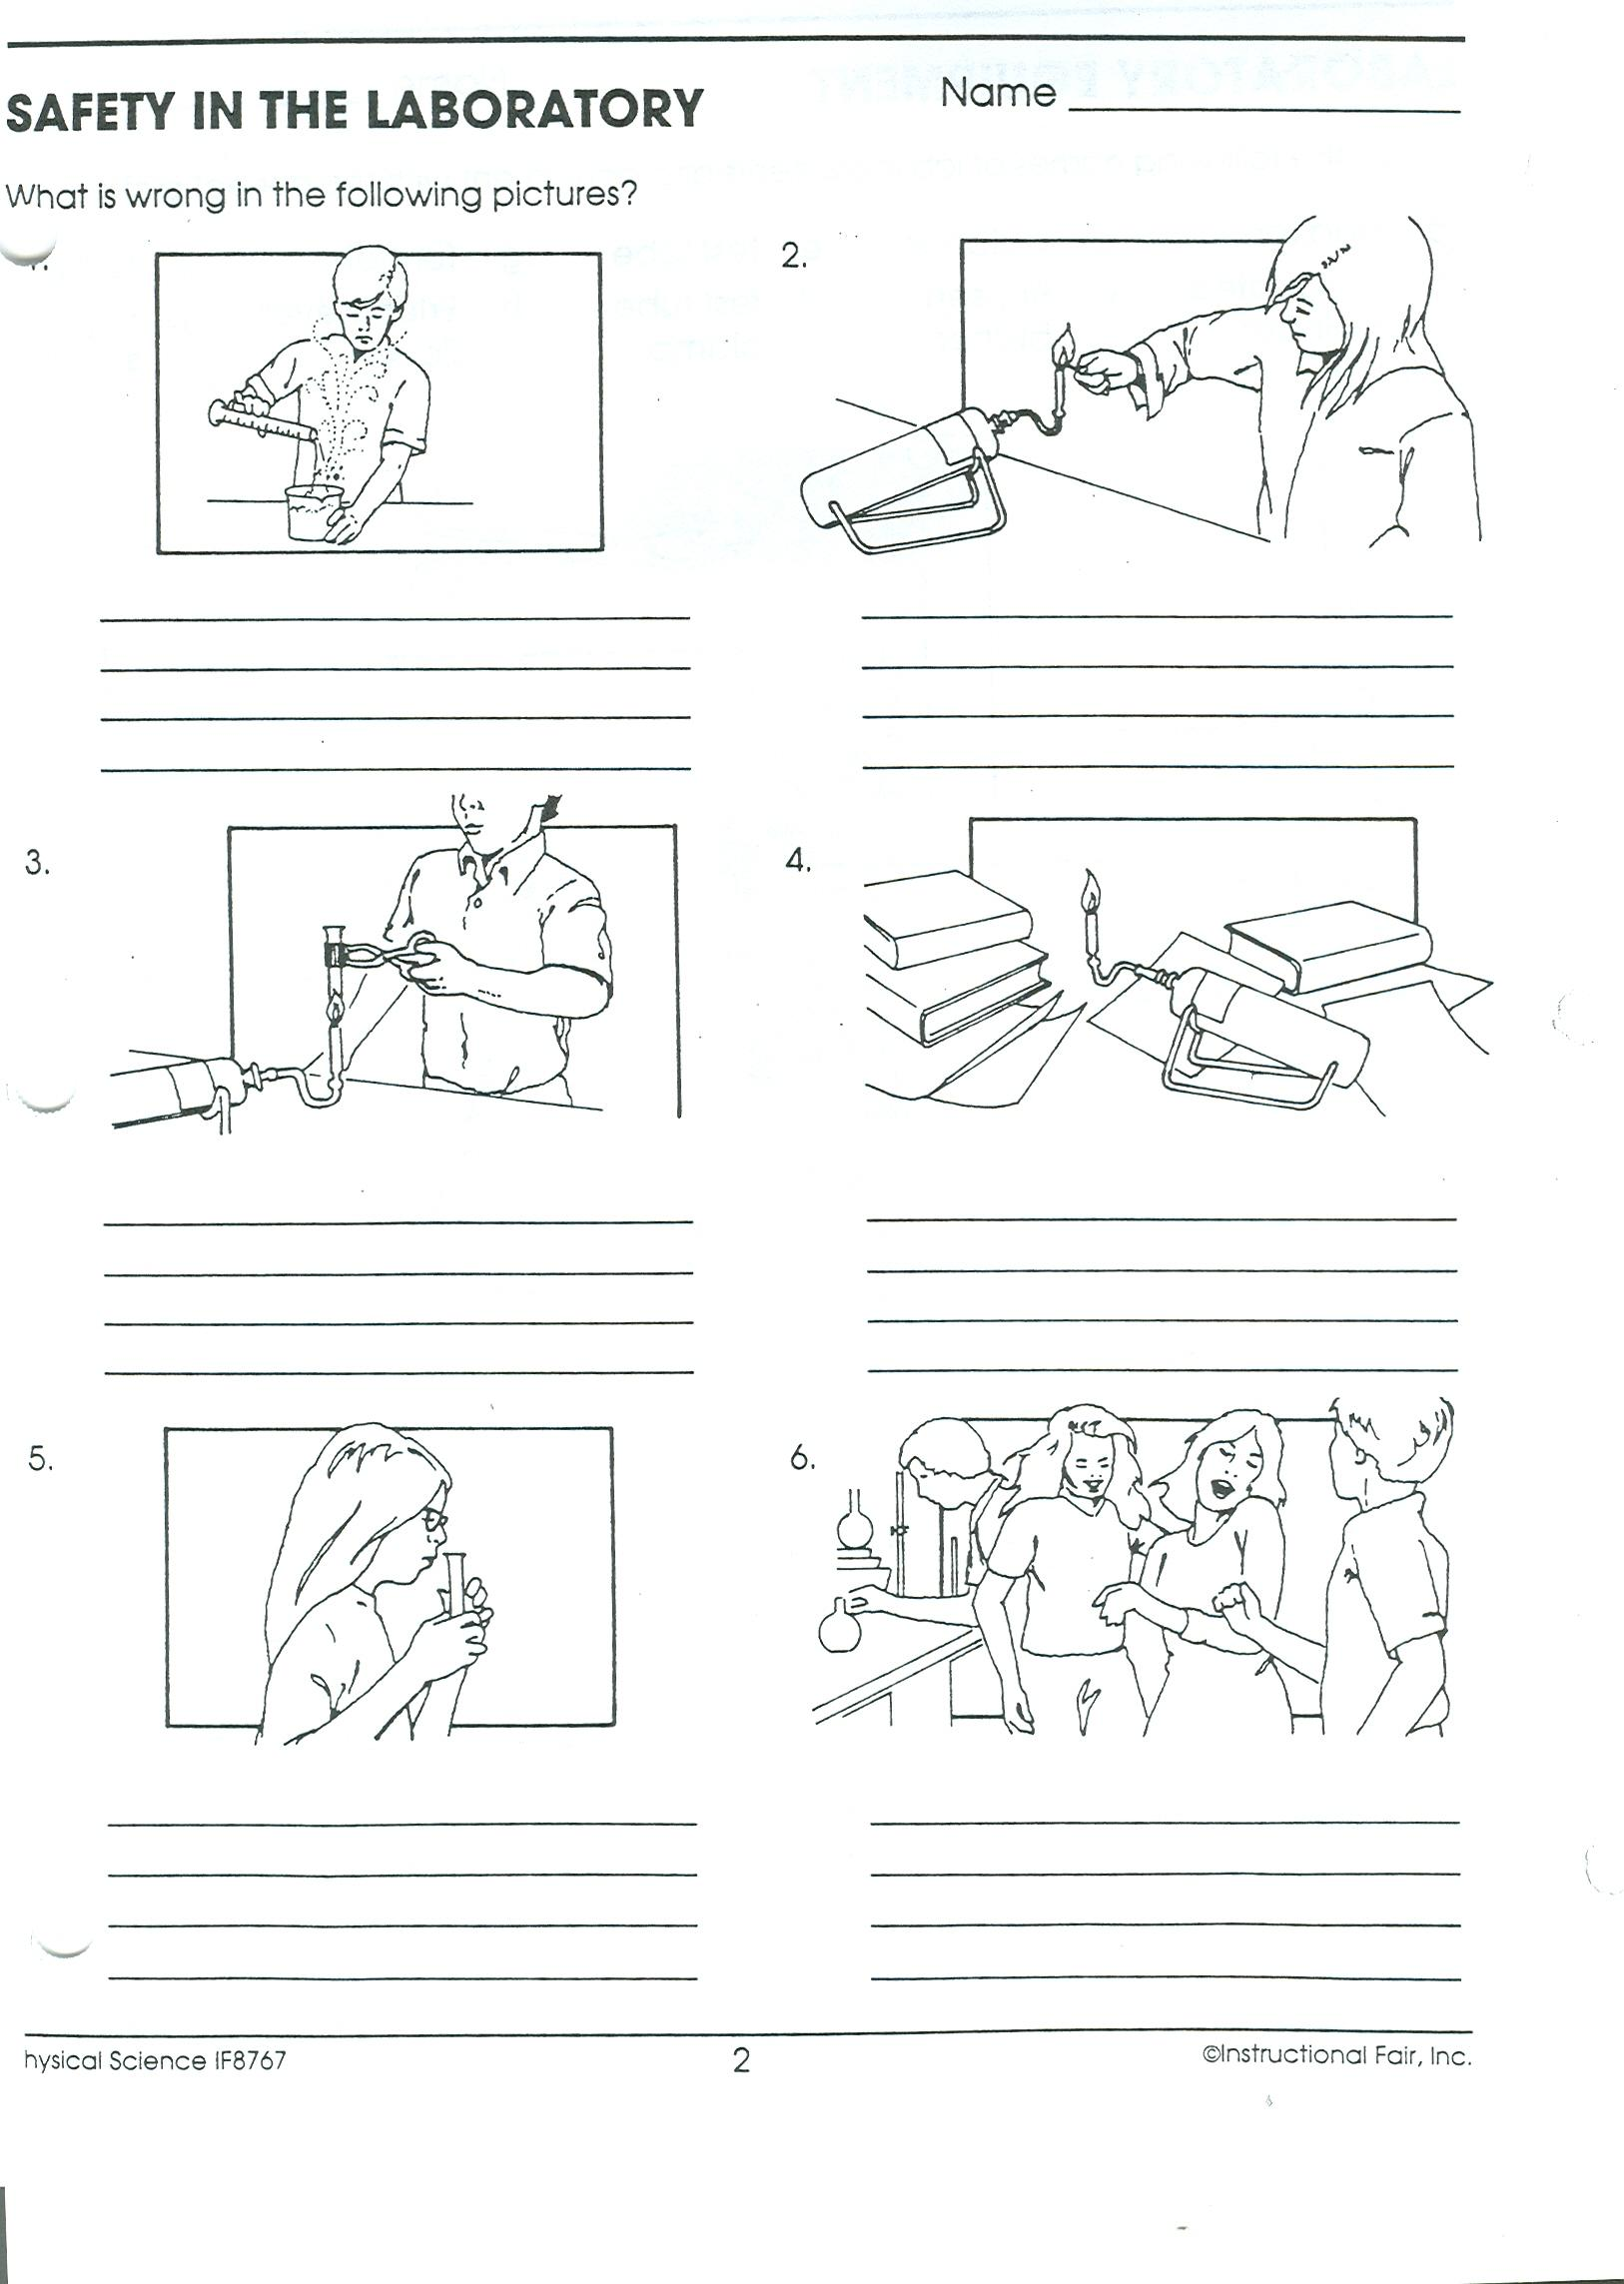 Worksheet Science Safety Worksheets science class on line e mail the safety rules that are being violated in each picture to mr sheehy